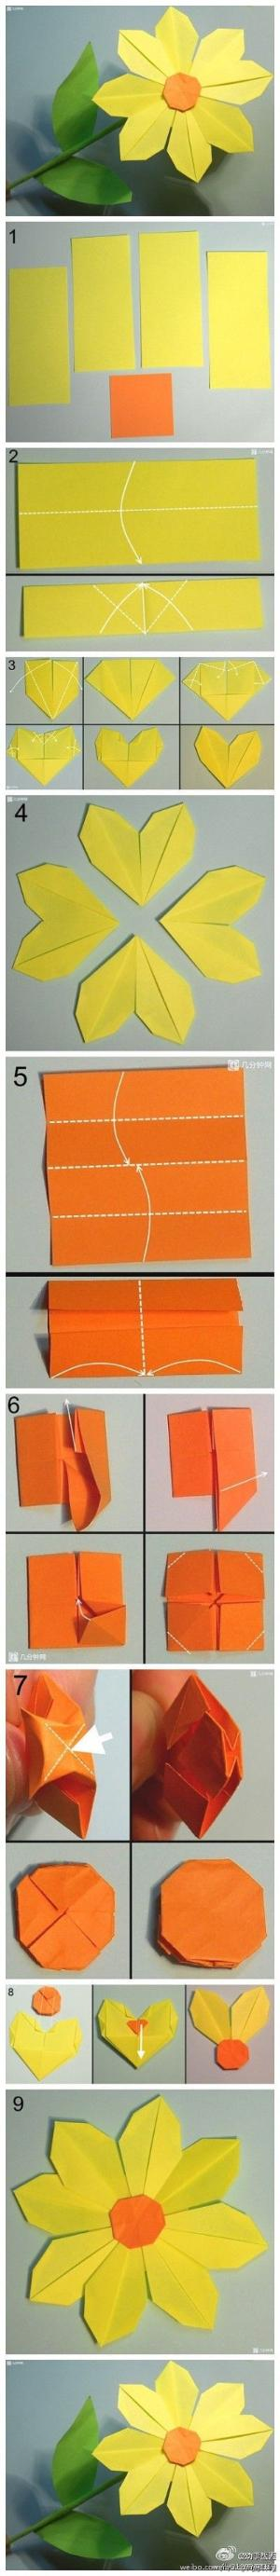 How To Make Pretty Paper Craft Origami Yellow Flower Step By Step By